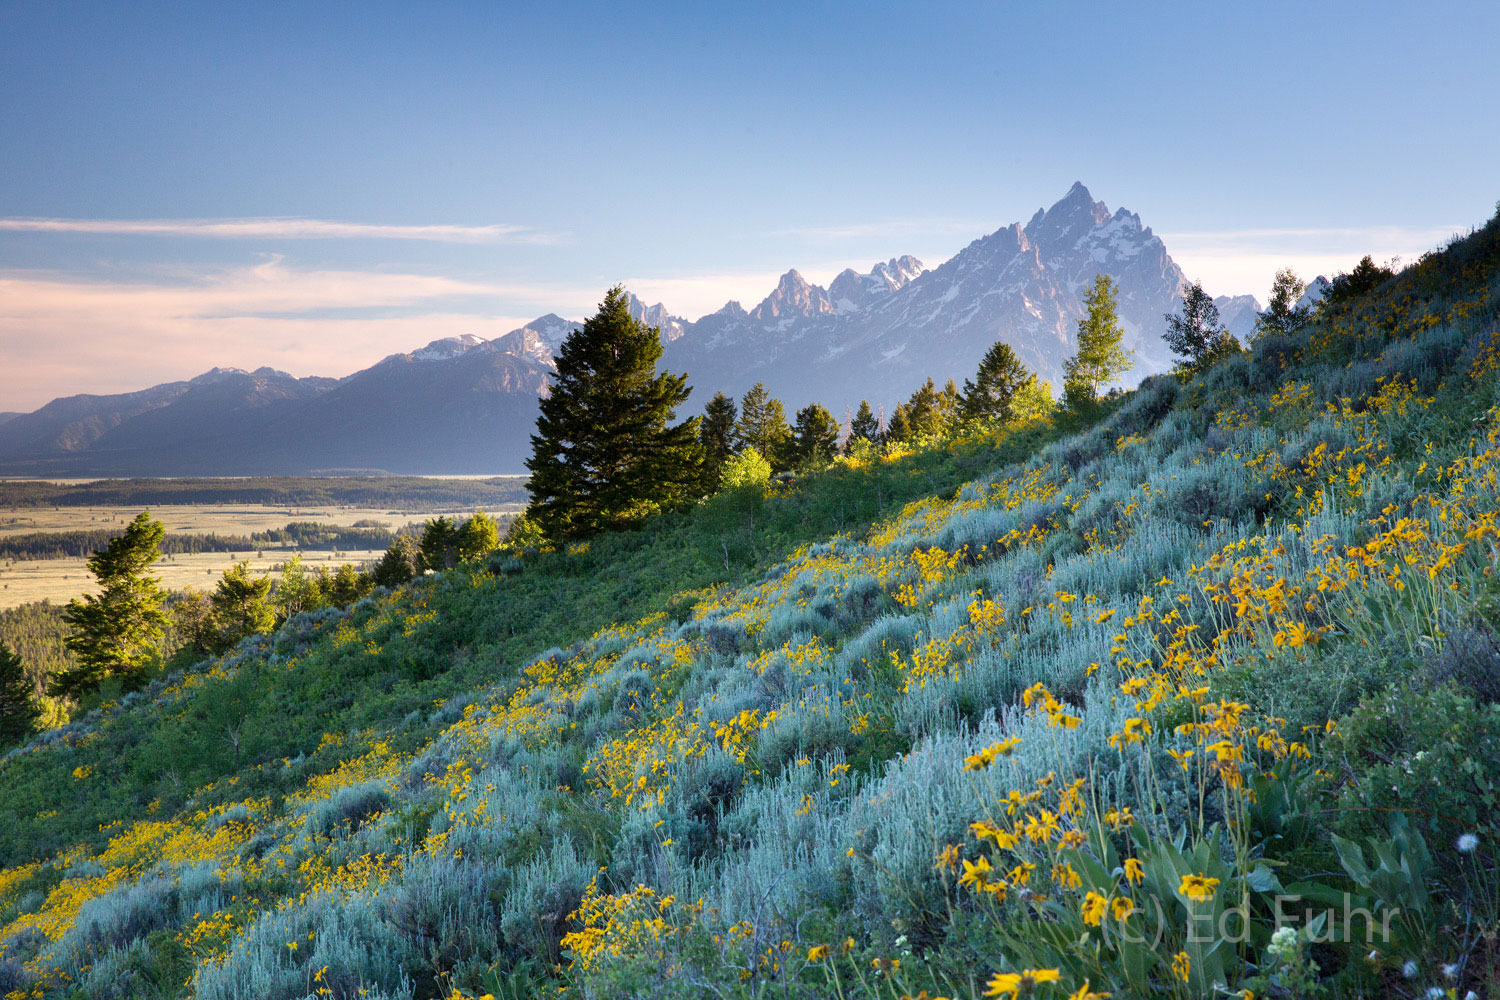 grand teton national park, signal mountain, photograph, image, 2013, photo